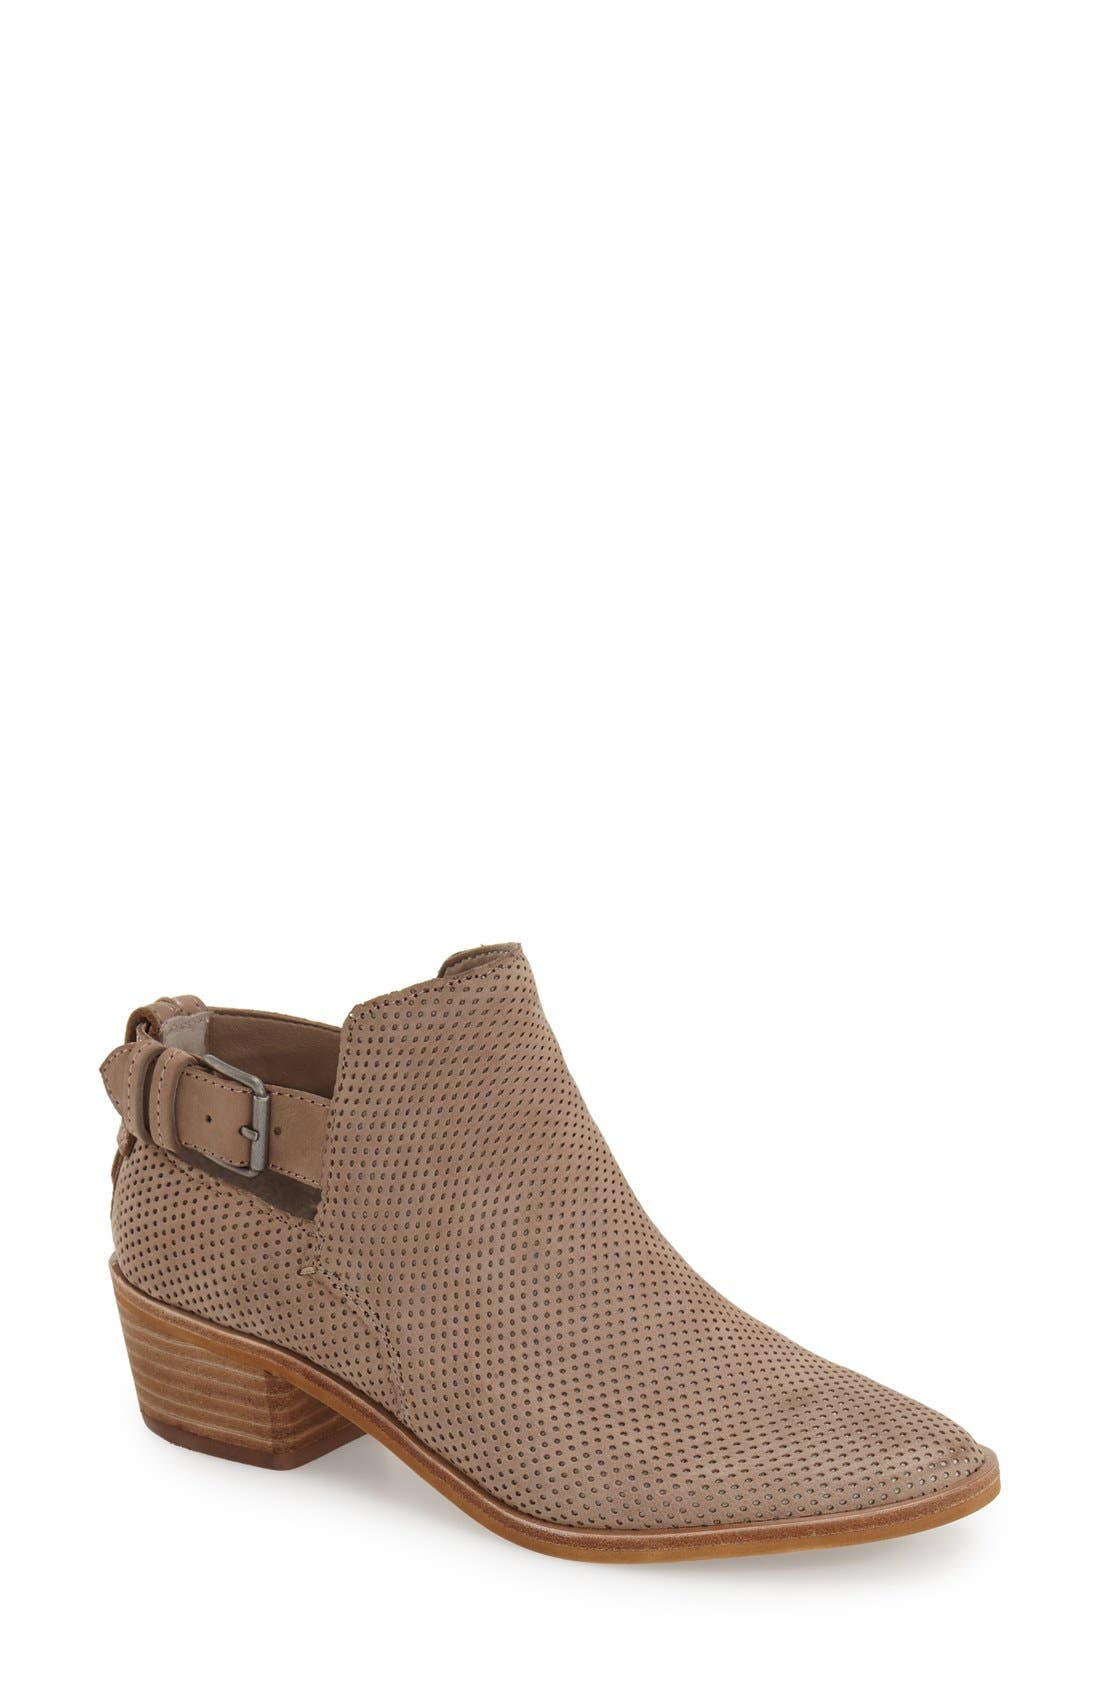 Alternate Image 1 Selected - Dolce Vita 'Kara' Perforated Bootie (Women)